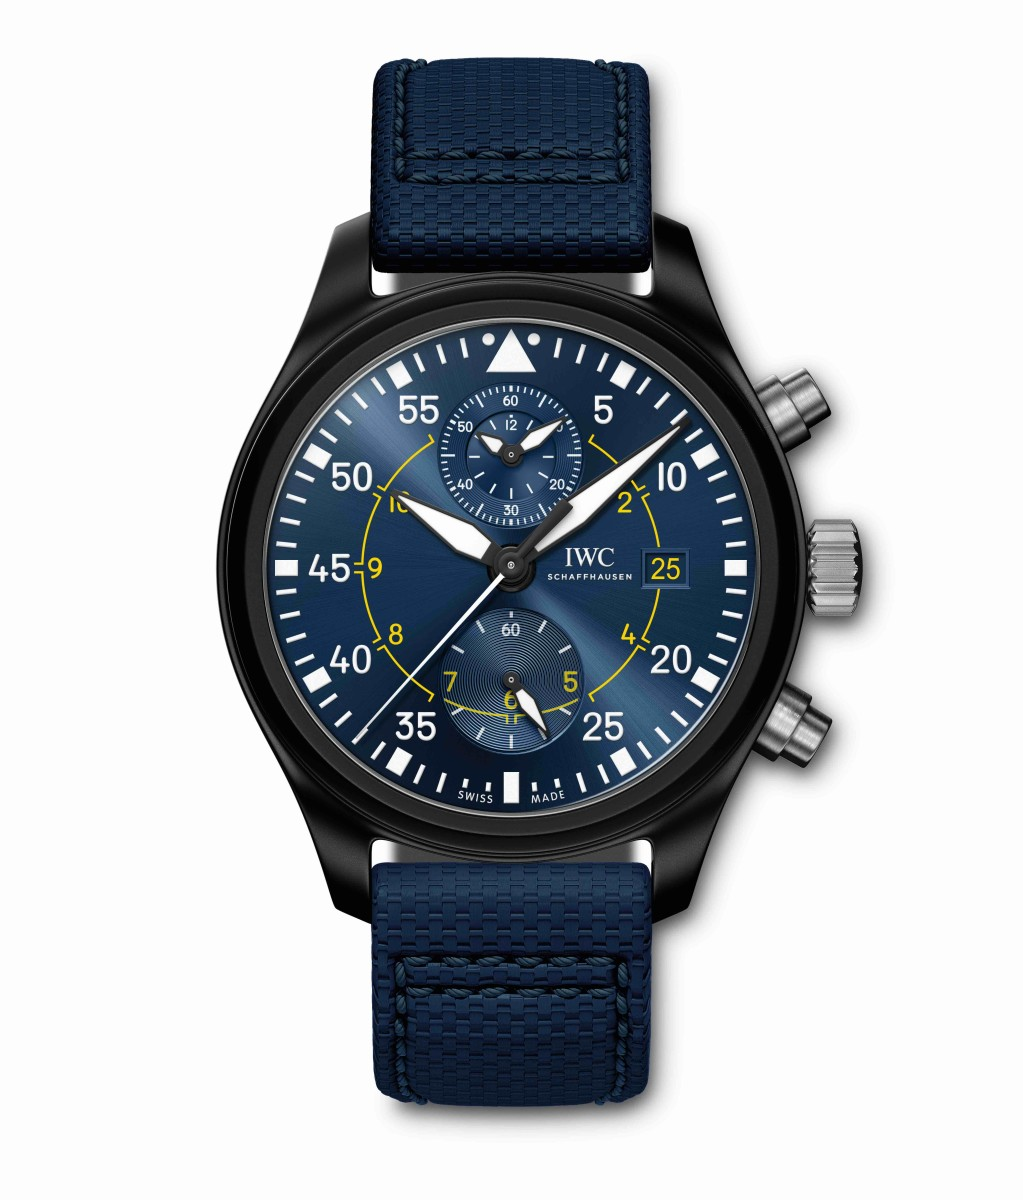 IWC Pilot's Watch Chronograph Blue Angels